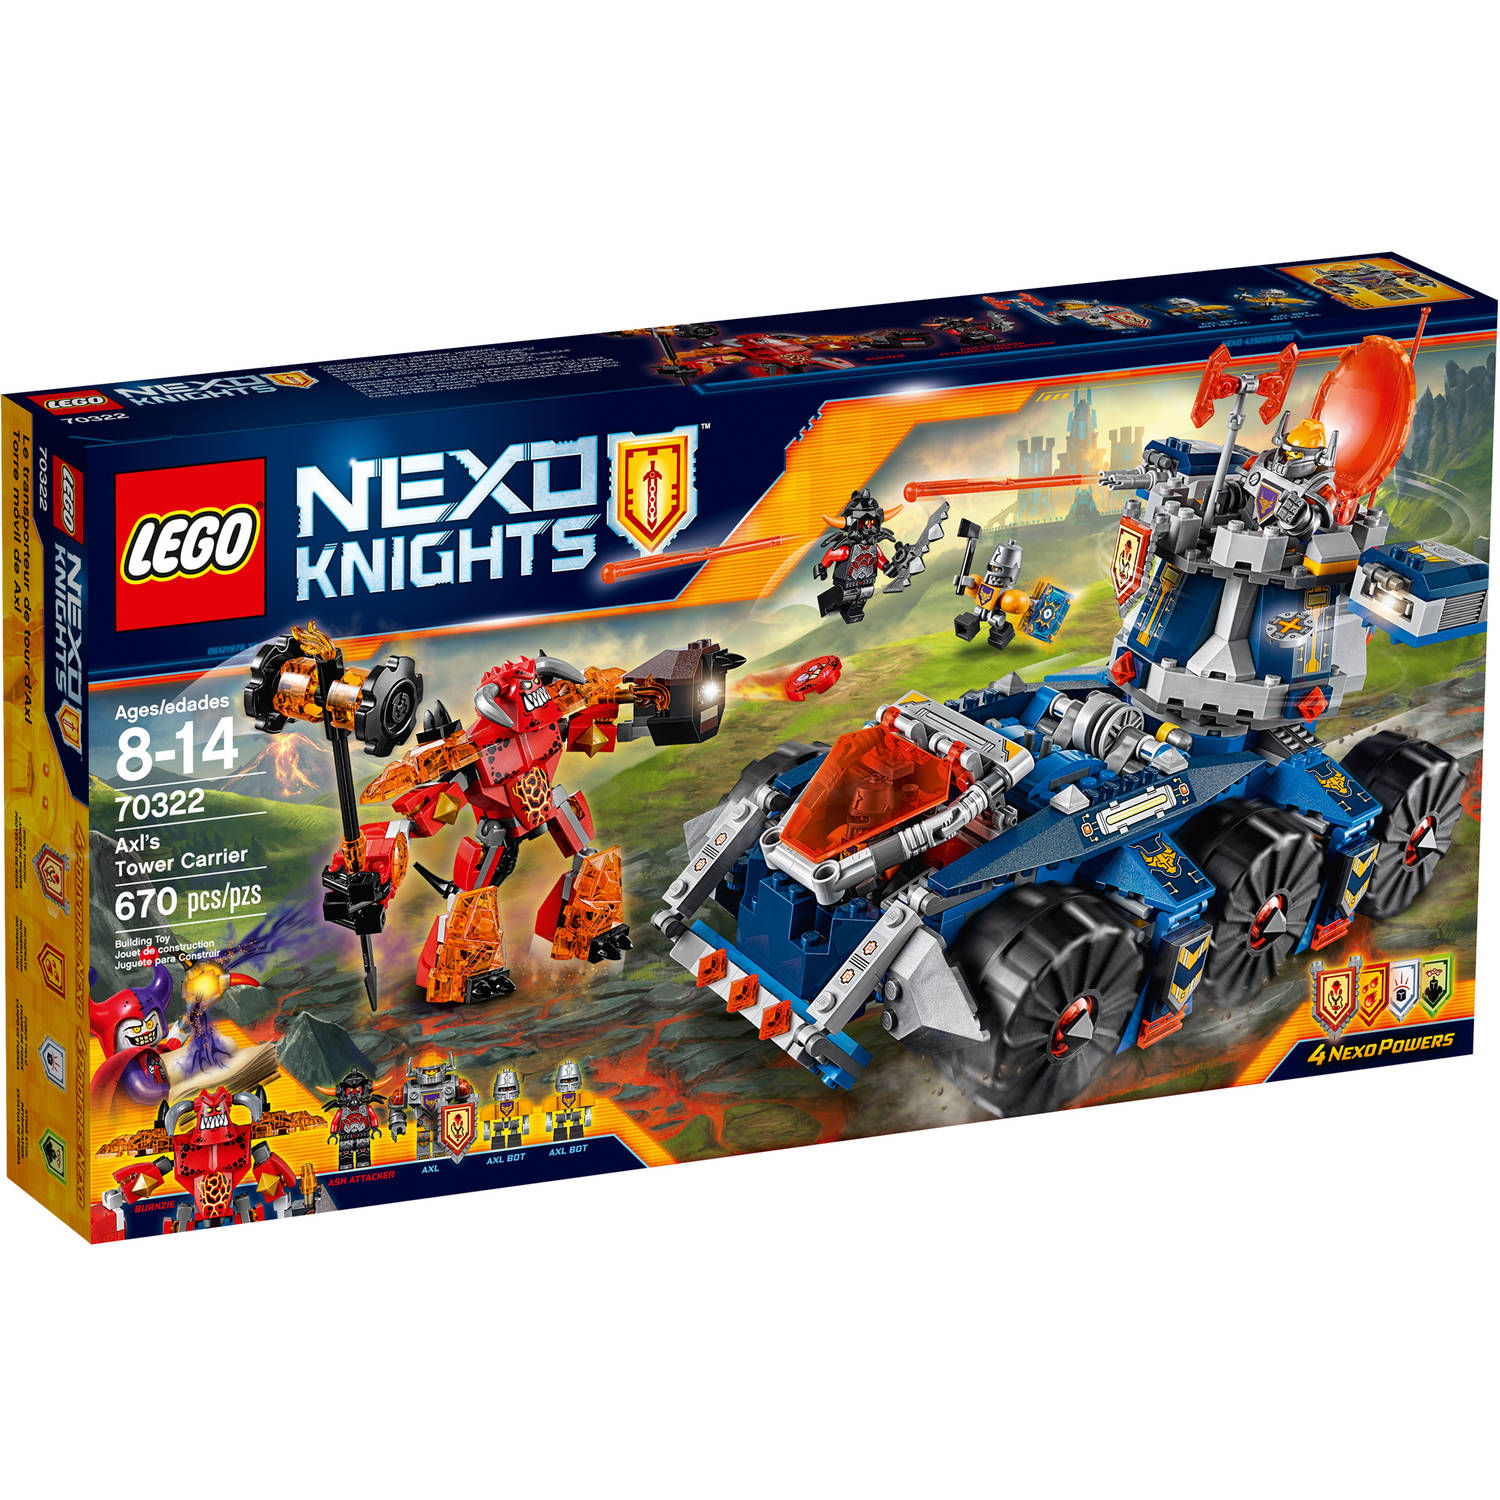 LEGO NEXO KNIGHTS Axl's Tower Carrier, 70322